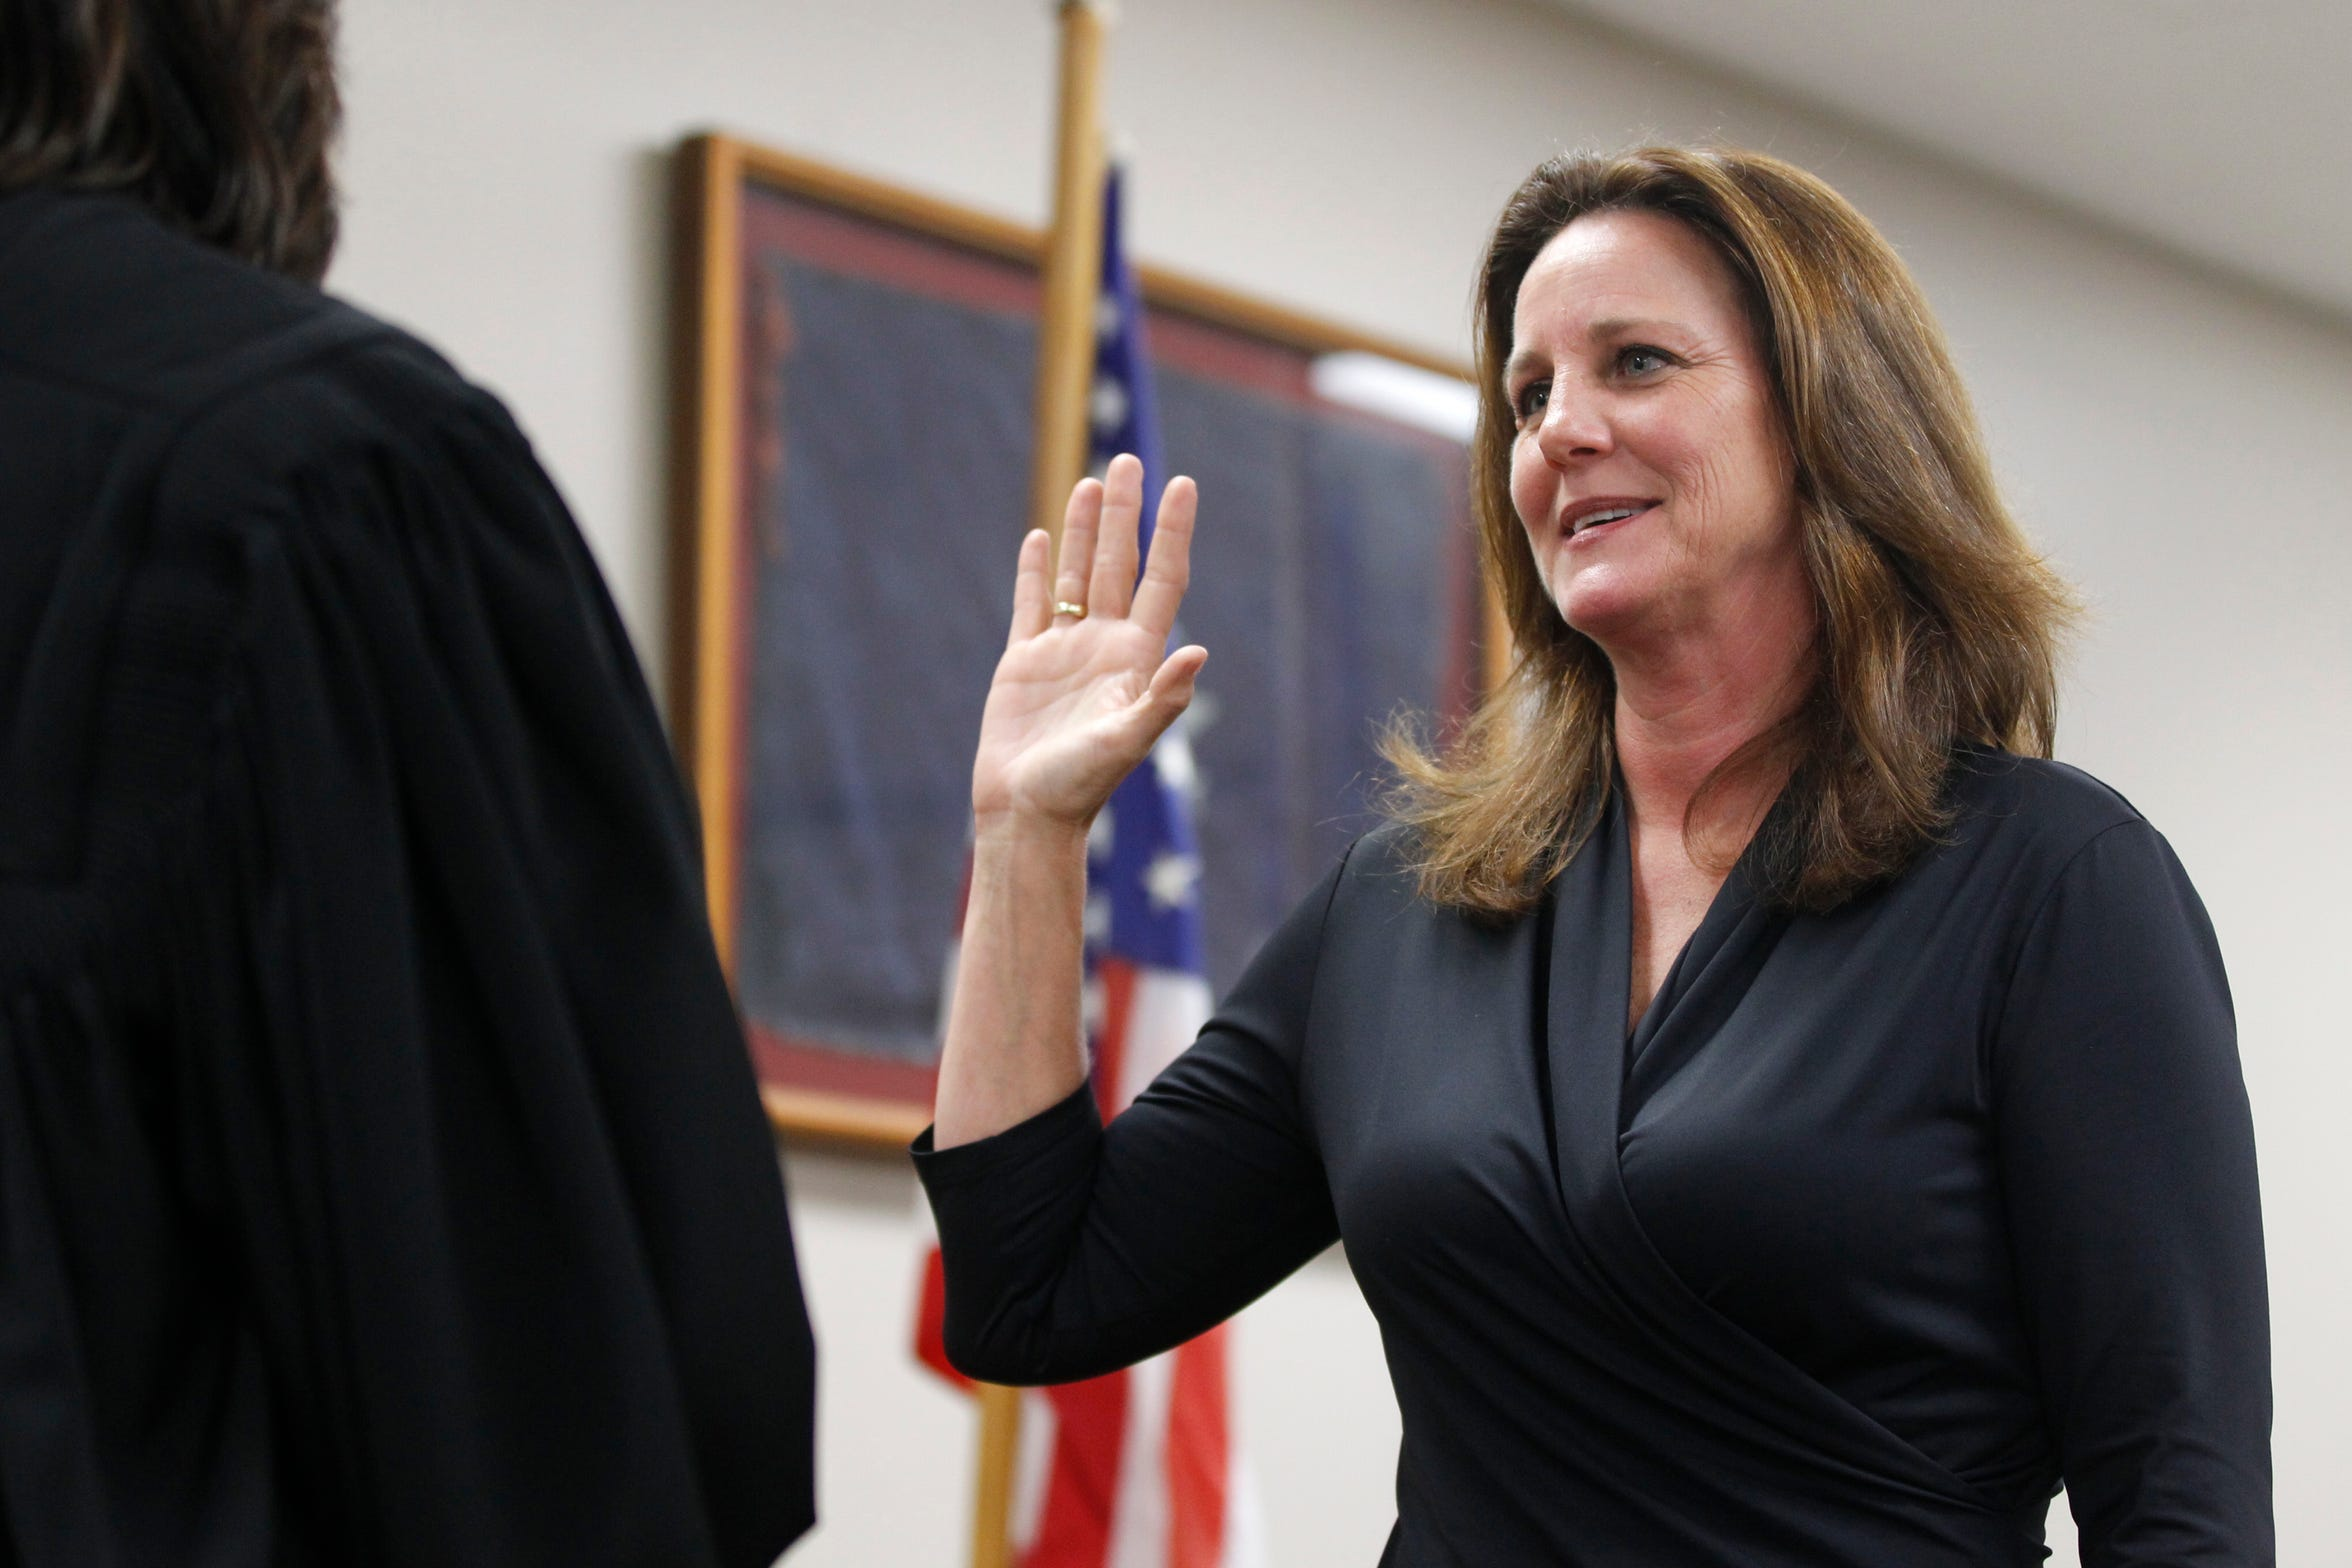 347th District Court Judge Missy Medary takes the judges oath of office in 2011. She is the first woman to serve as Presiding Judge of the Fifth Administrative Judicial Region.